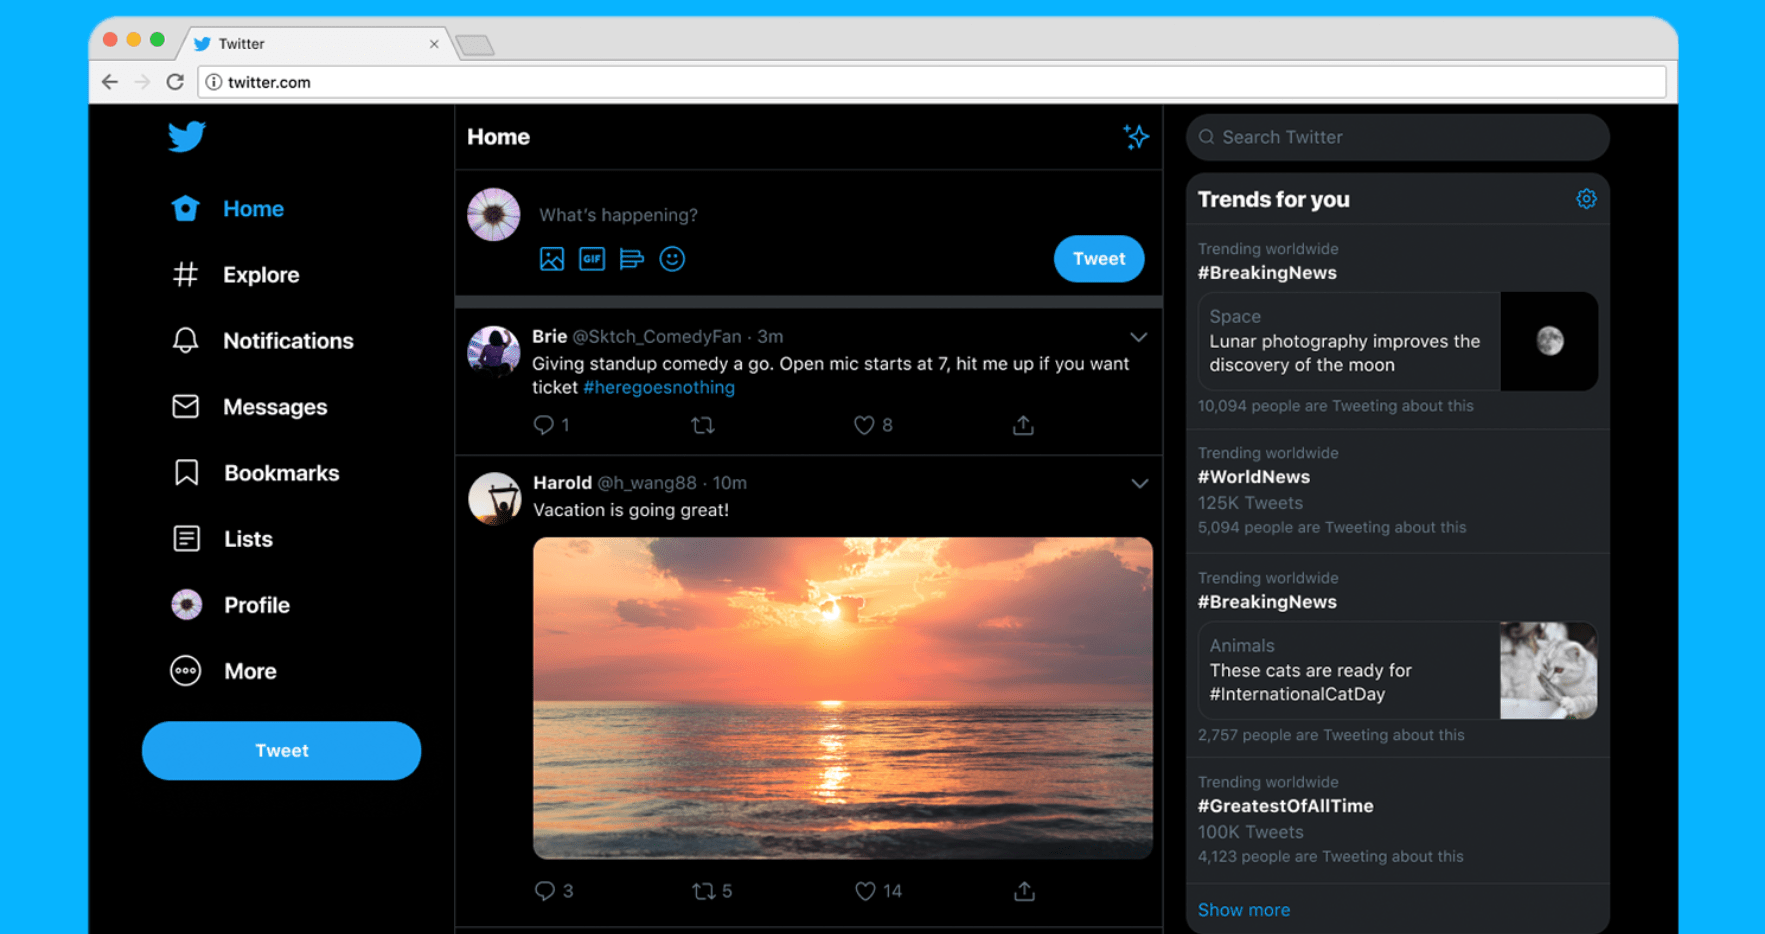 Twitter's website has faster, cleaner look, including new color themes